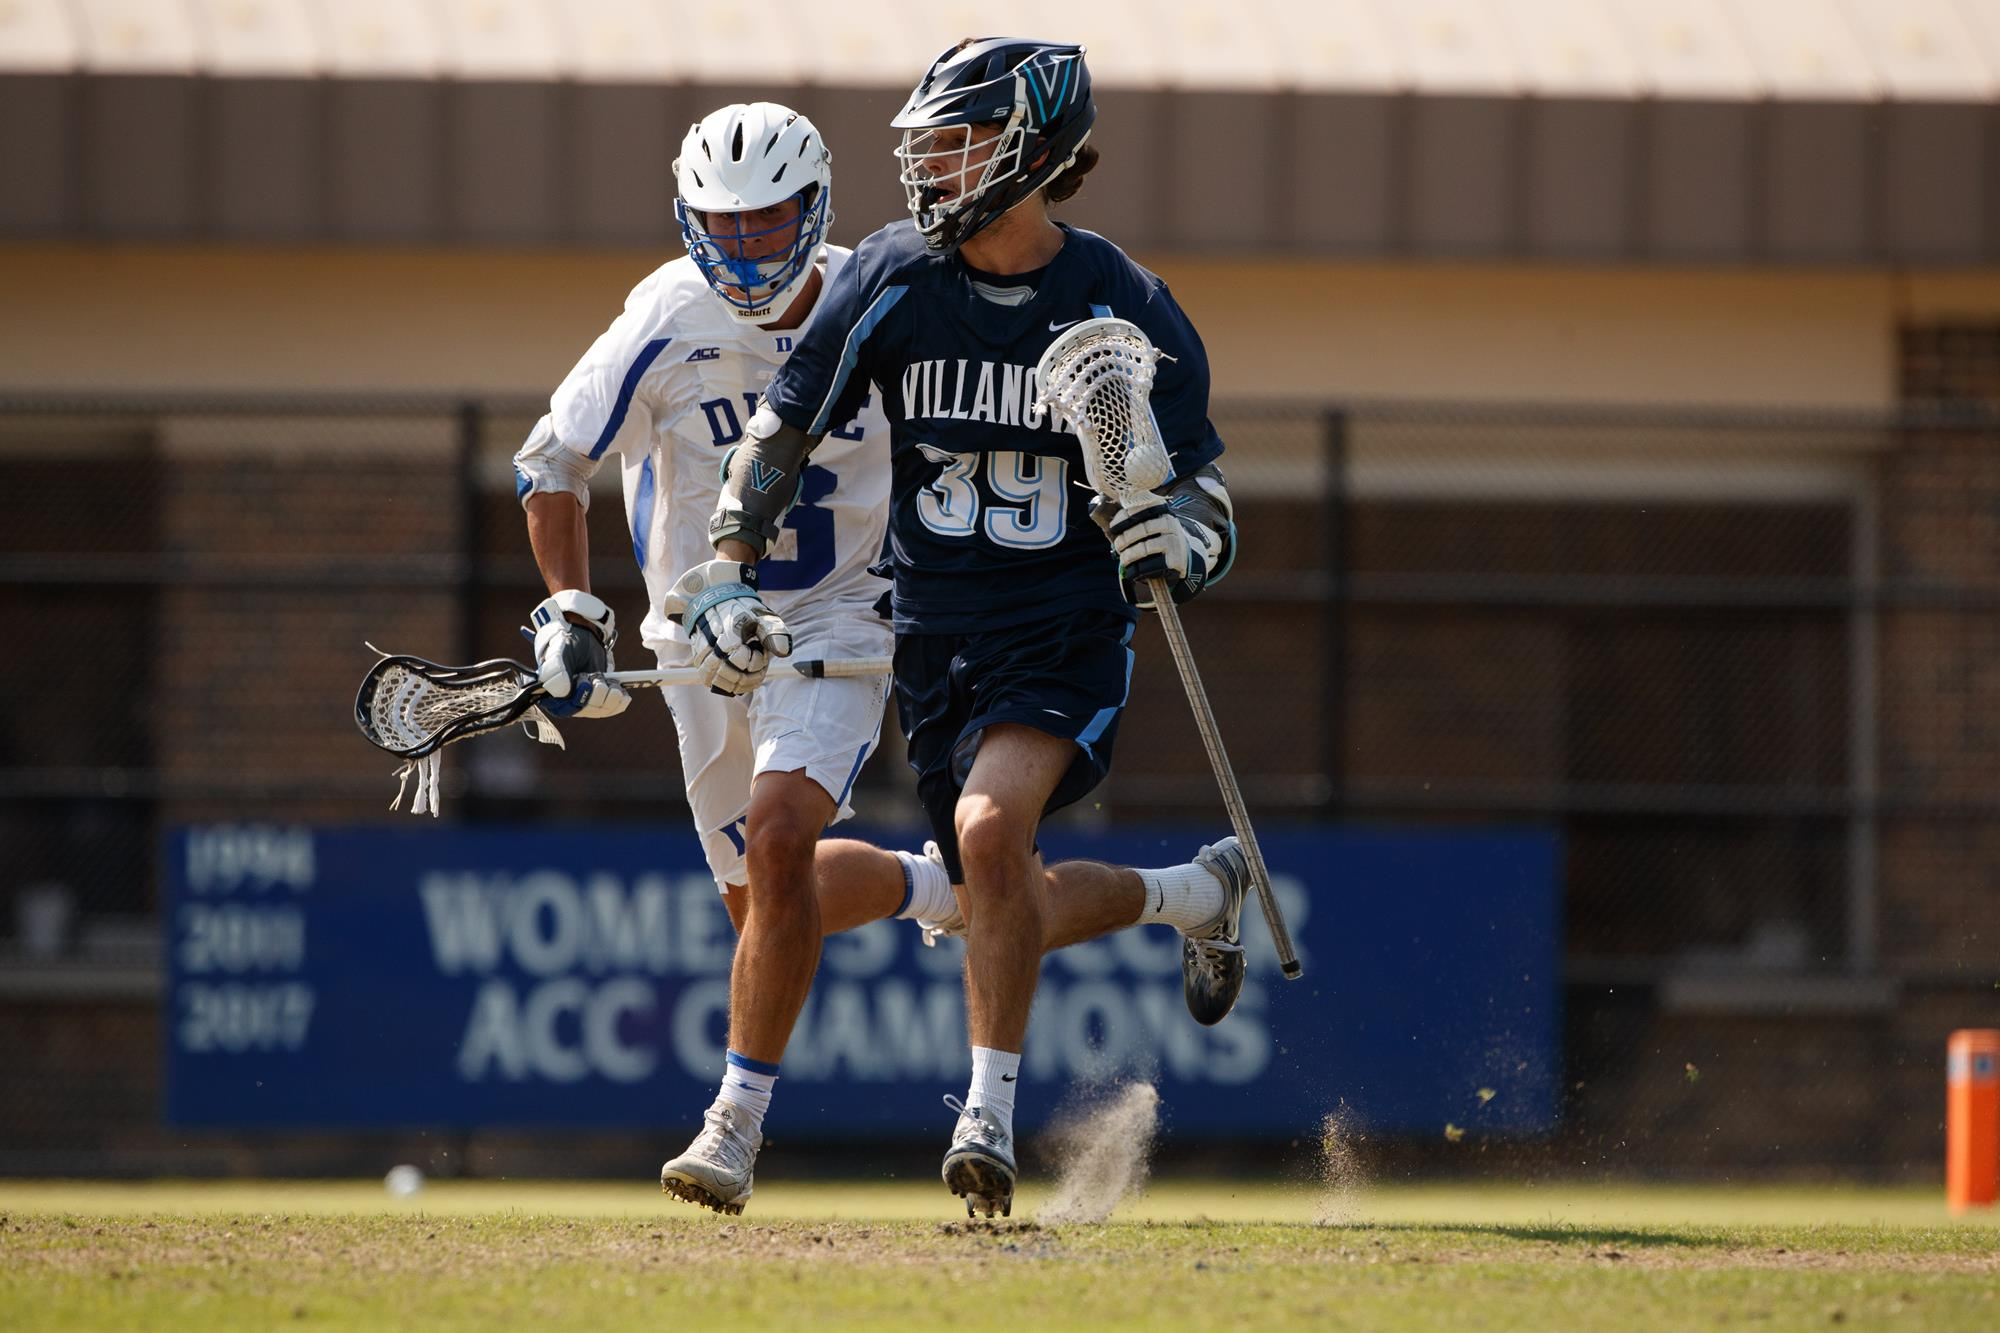 Villanova Calendar 2019 Men's Lacrosse Announces 2019 Schedule   Villanova University